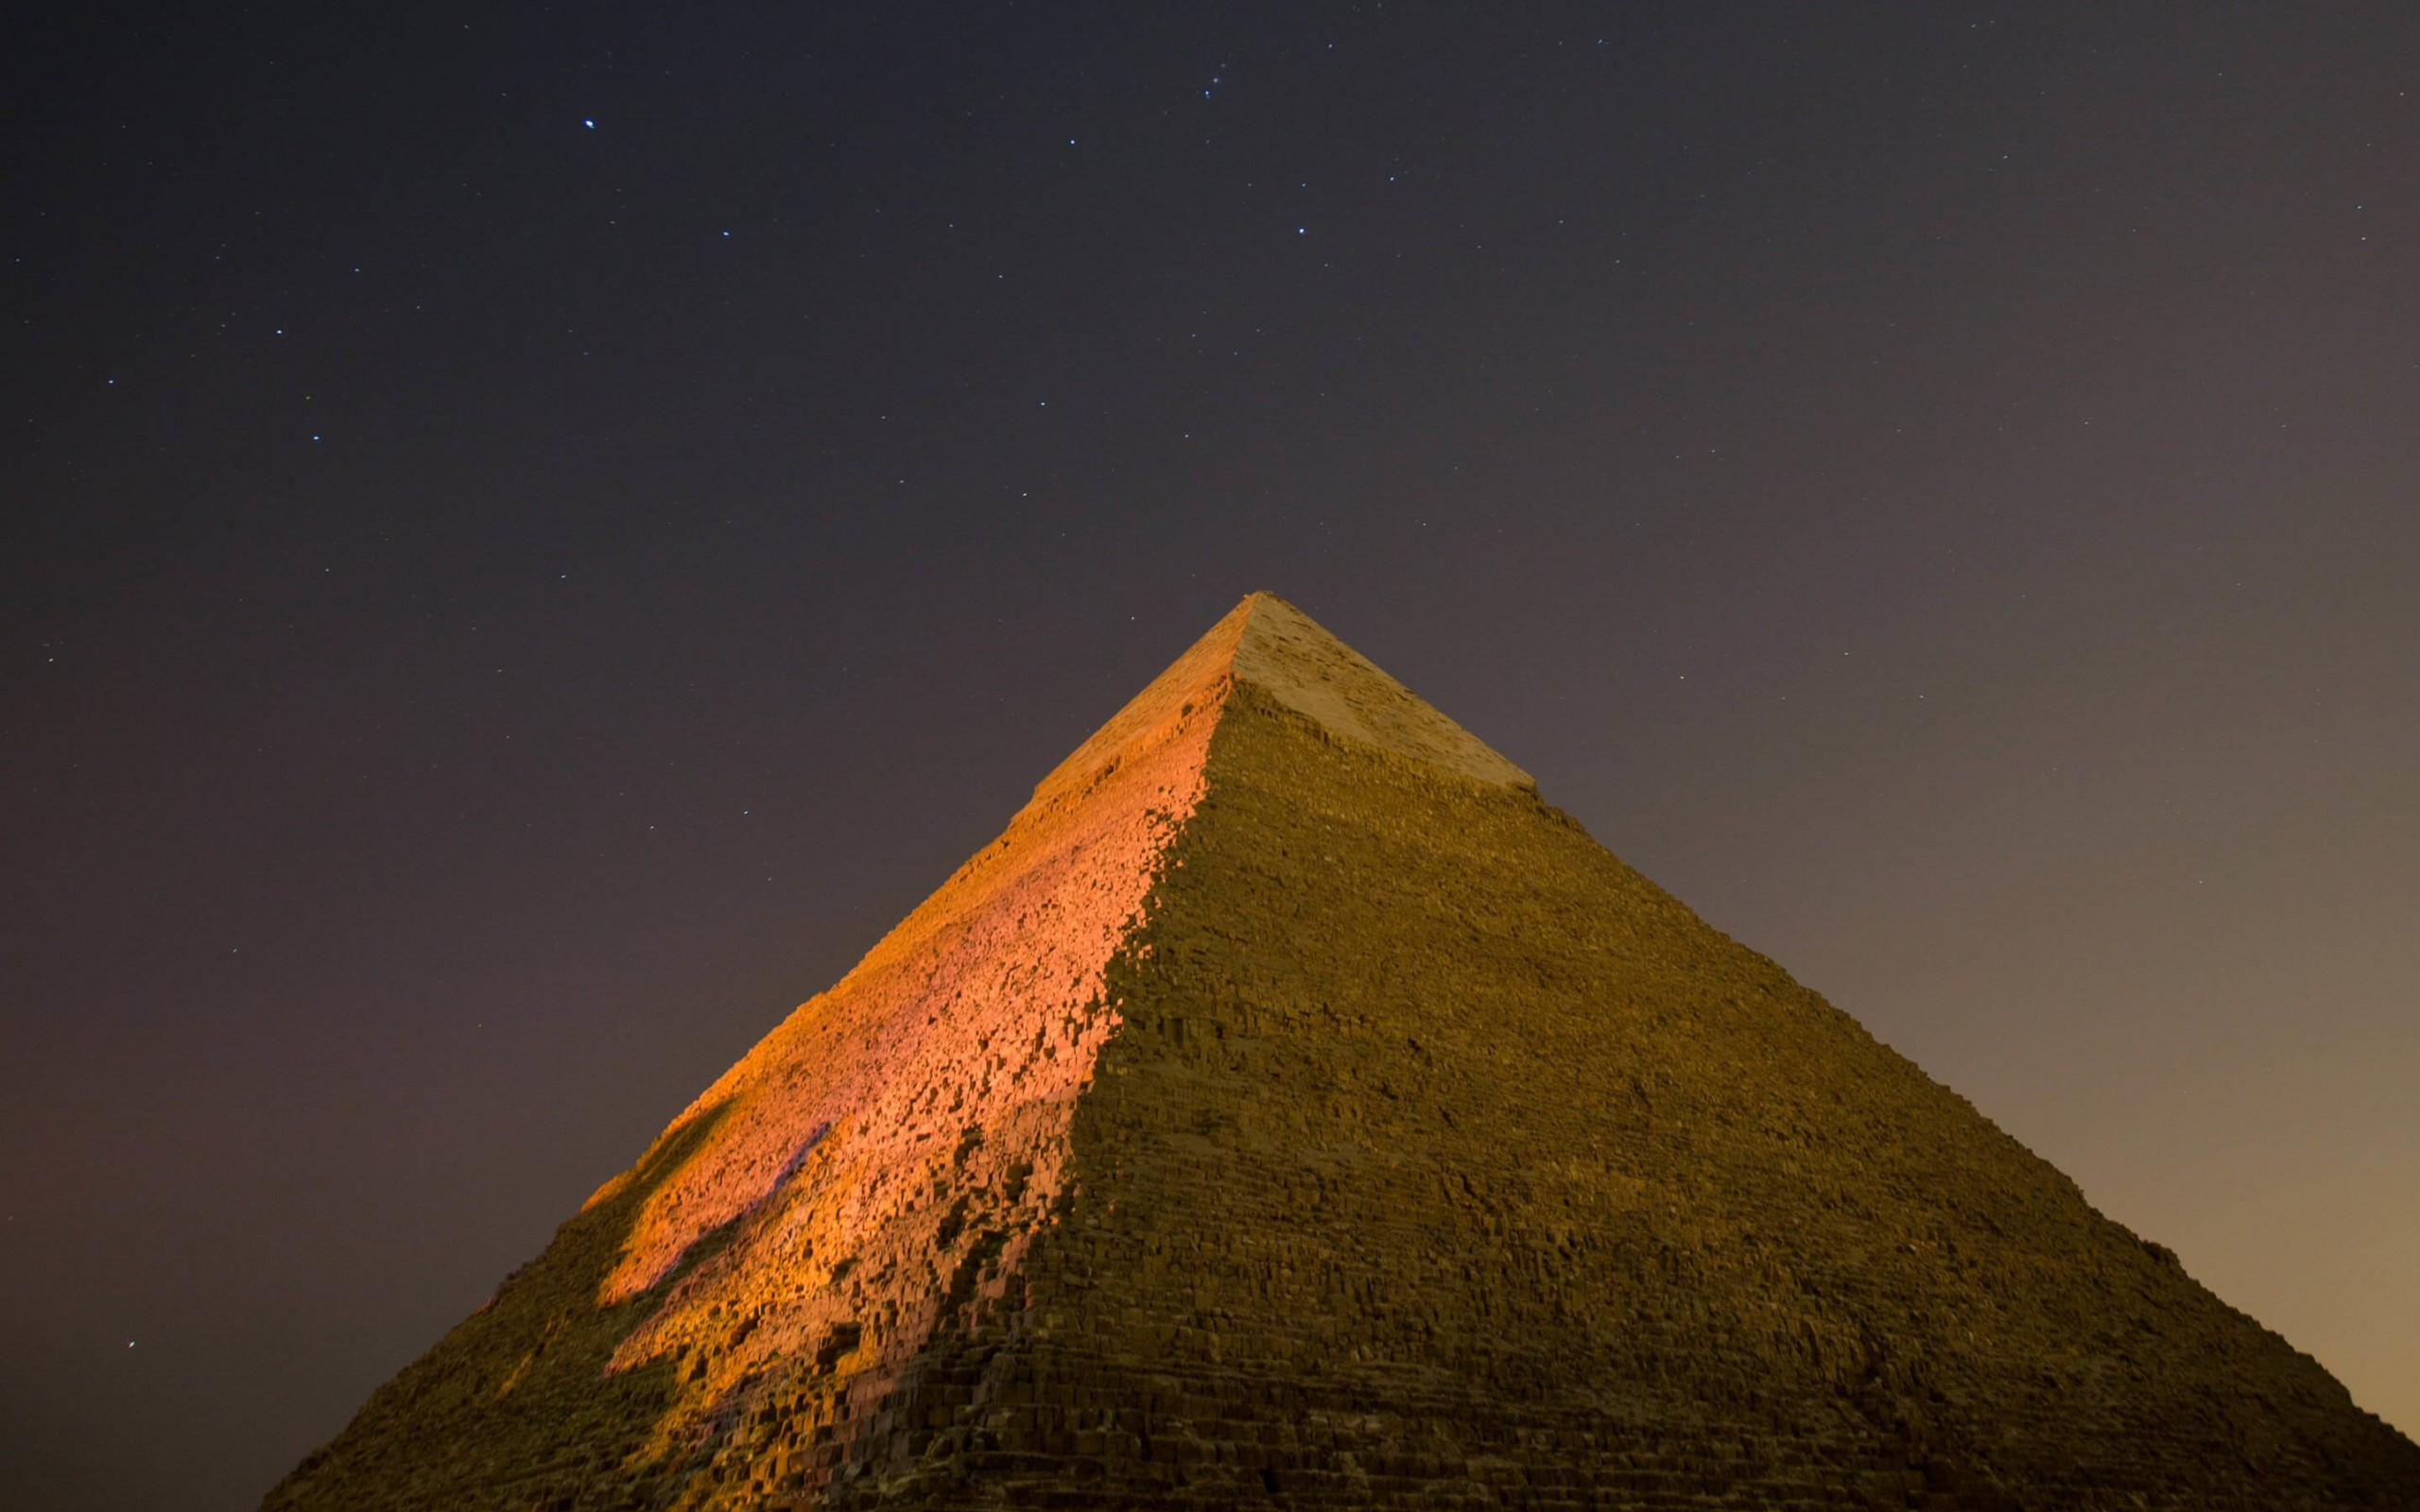 Pyramid by Night Wallpaper for Desktop 2560x1600